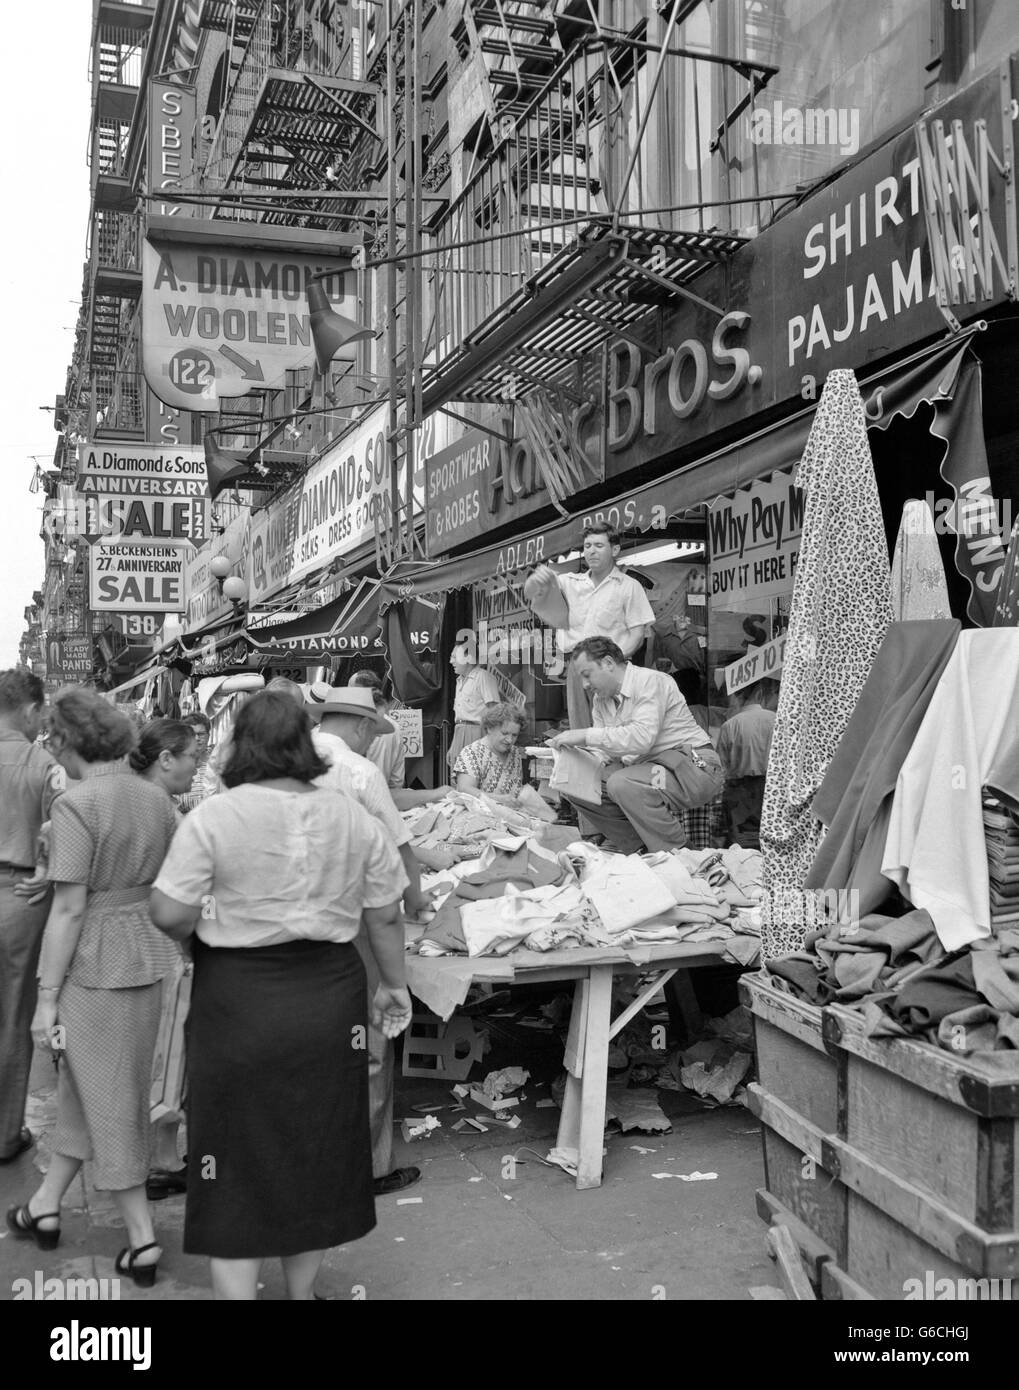 1950s SIDEWALK MERCHANTS LOWER EAST SIDE MANHATTAN NEW YORK CITY NY USA - Stock Image